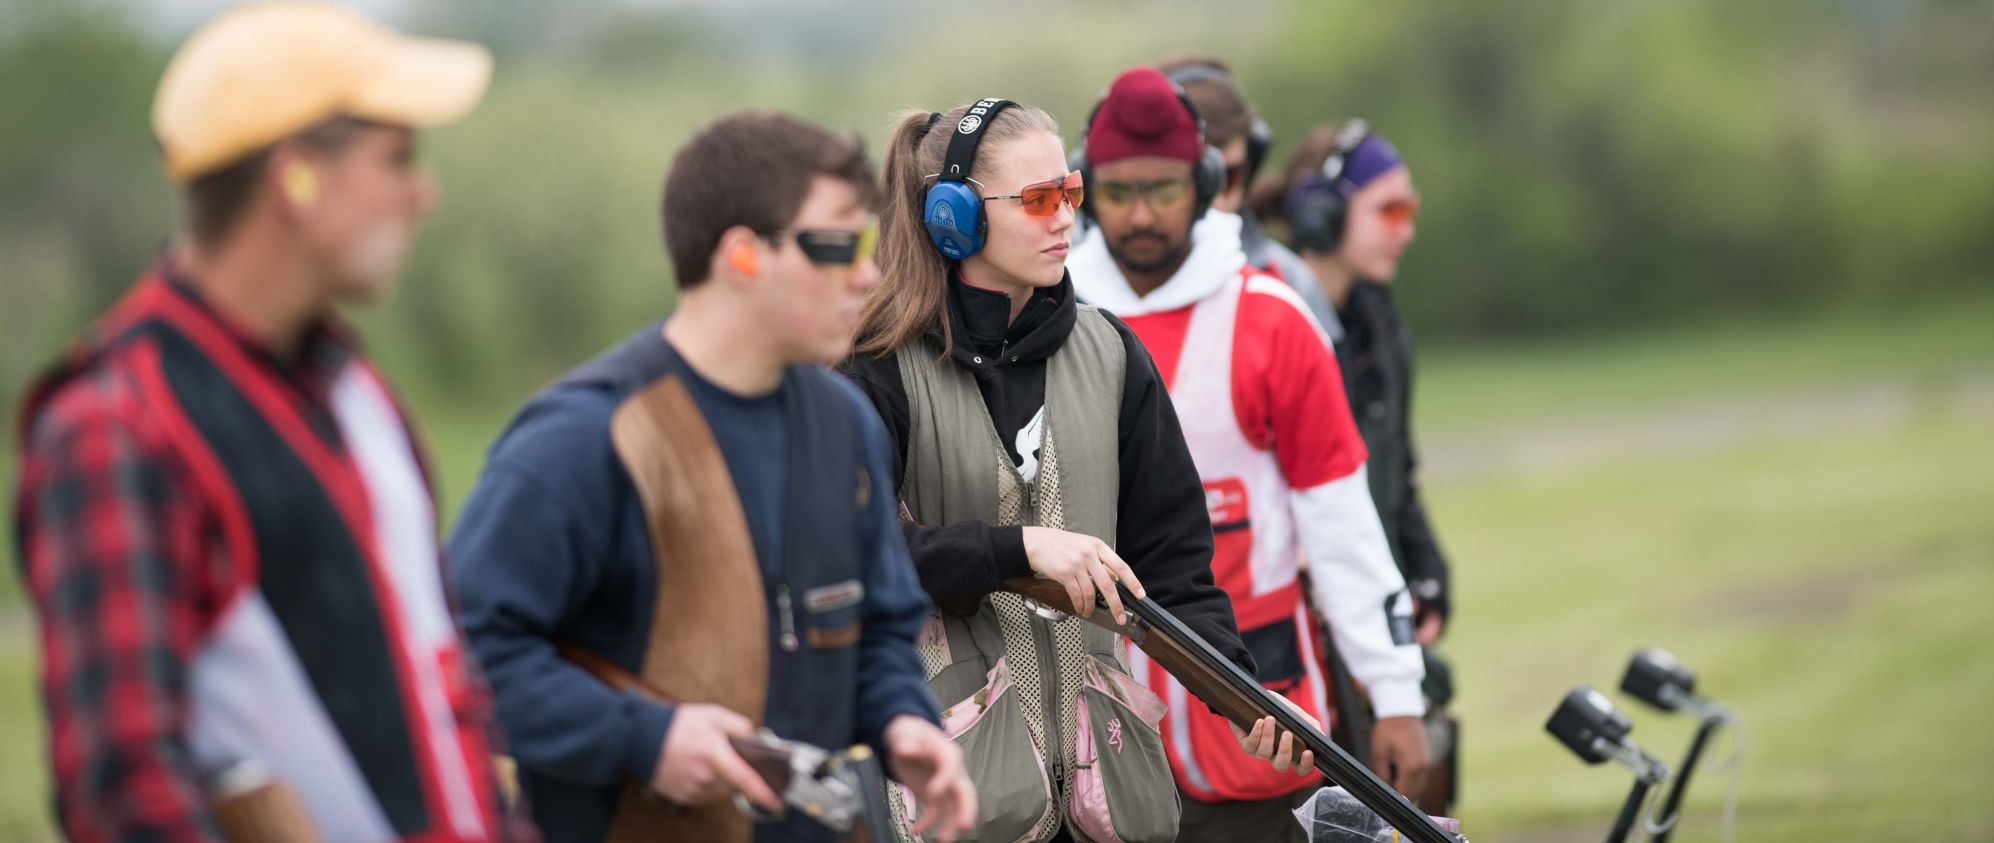 Trapshooting Academy Spring Event - Victoria Day, 2017